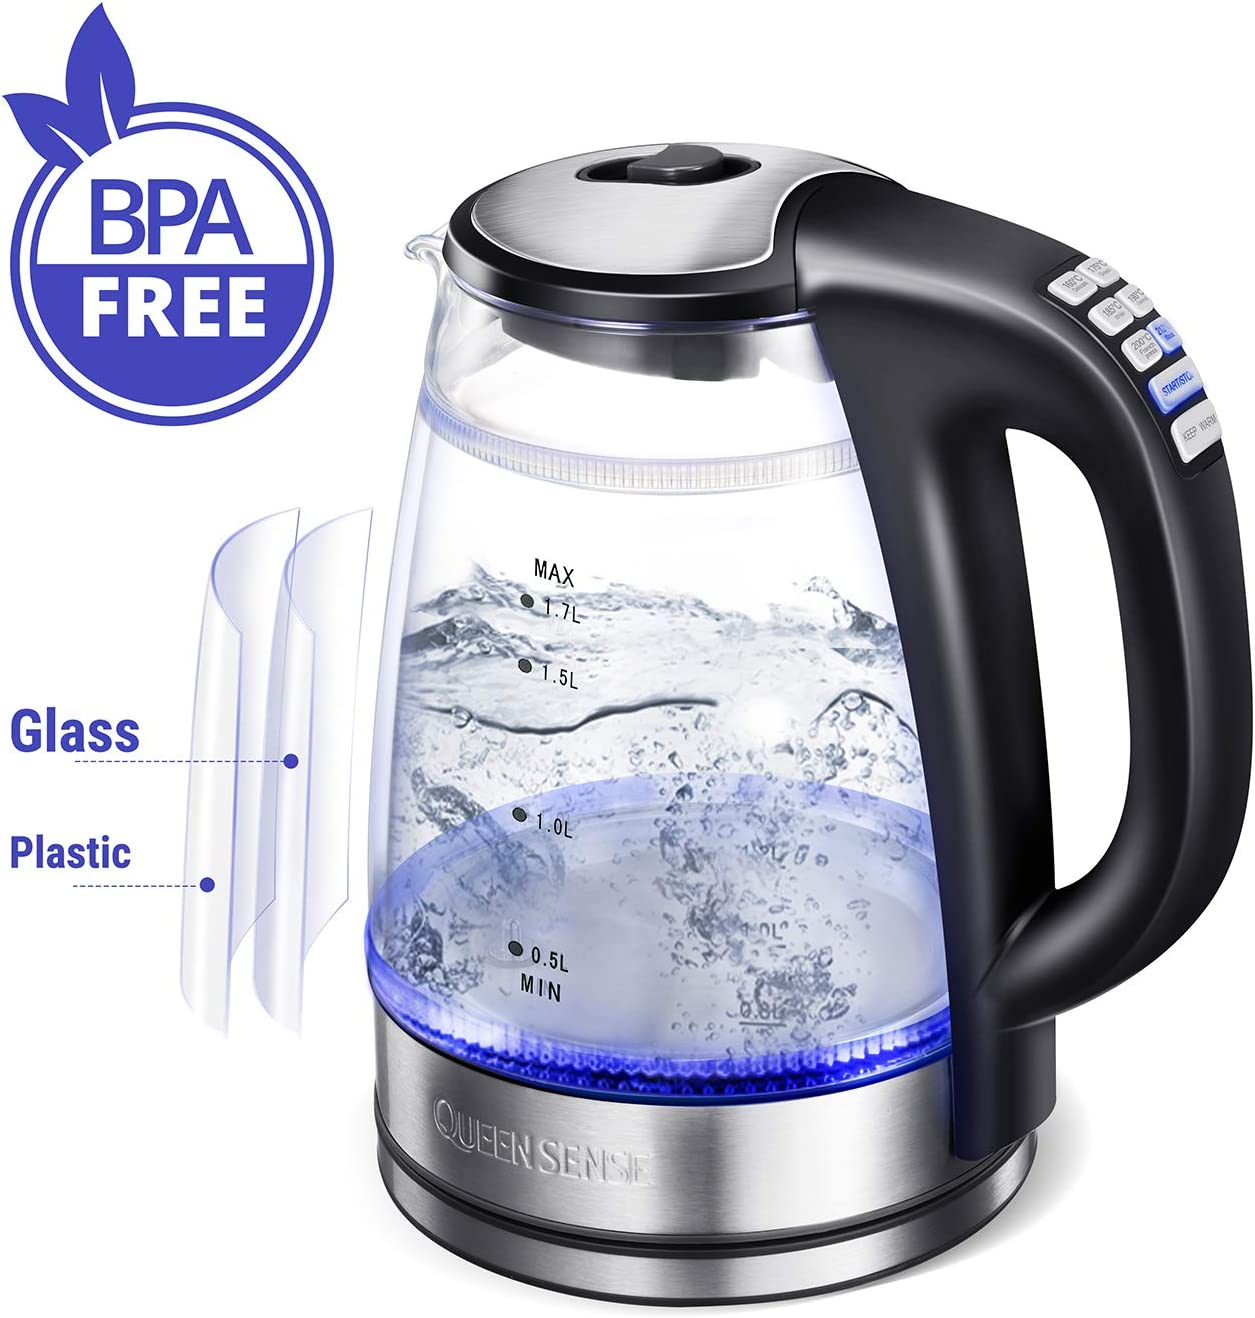 Electric Tea Kettle with Temperature control, Double Wall Glass 1.7L Cordless Hot Water Kettle Electric with Keep Warm, 1500W Fast boiler with Blue LED, BPA Free, Auto Shut-Off, Boil-Dry Protect